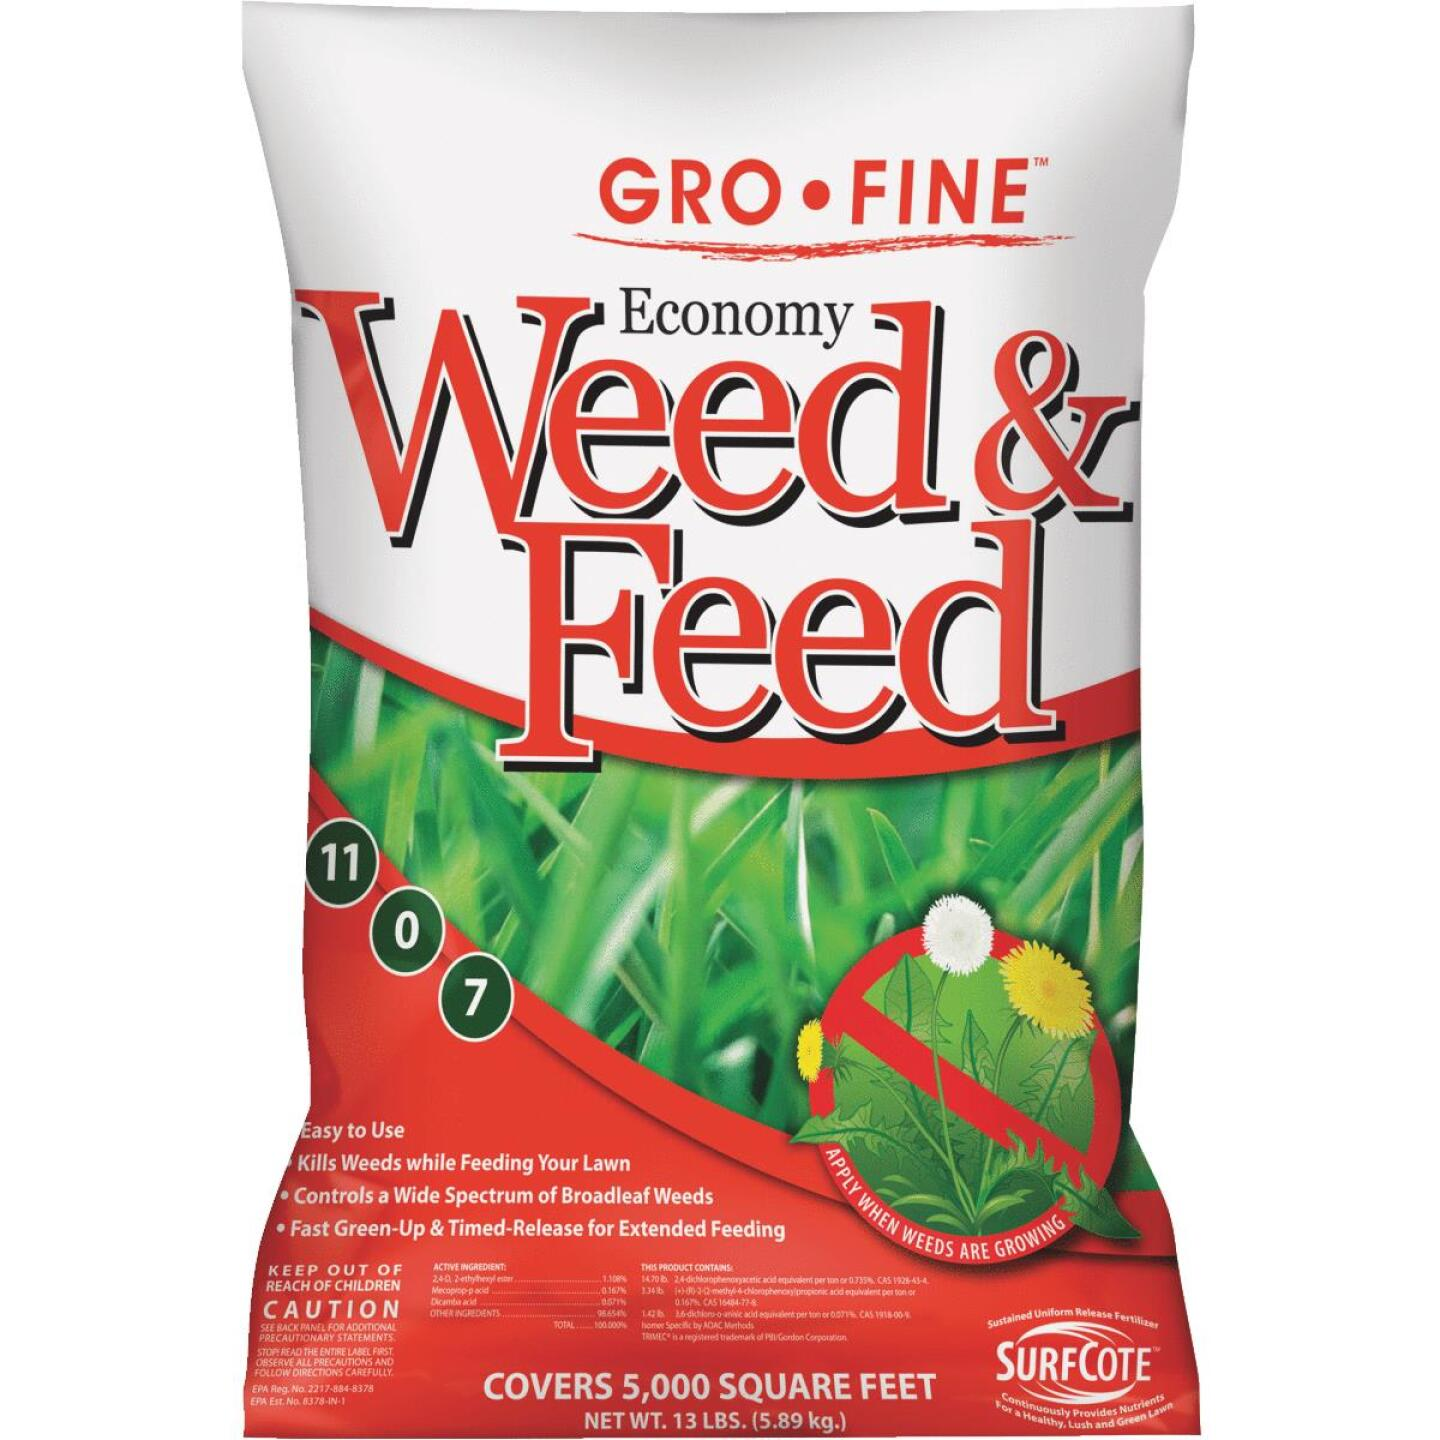 Gro-Fine Economy Weed & Feed 13 Lb. 5000 Sq. Ft. 11-0-7 Lawn Fertilizer with Weed Killer Image 1